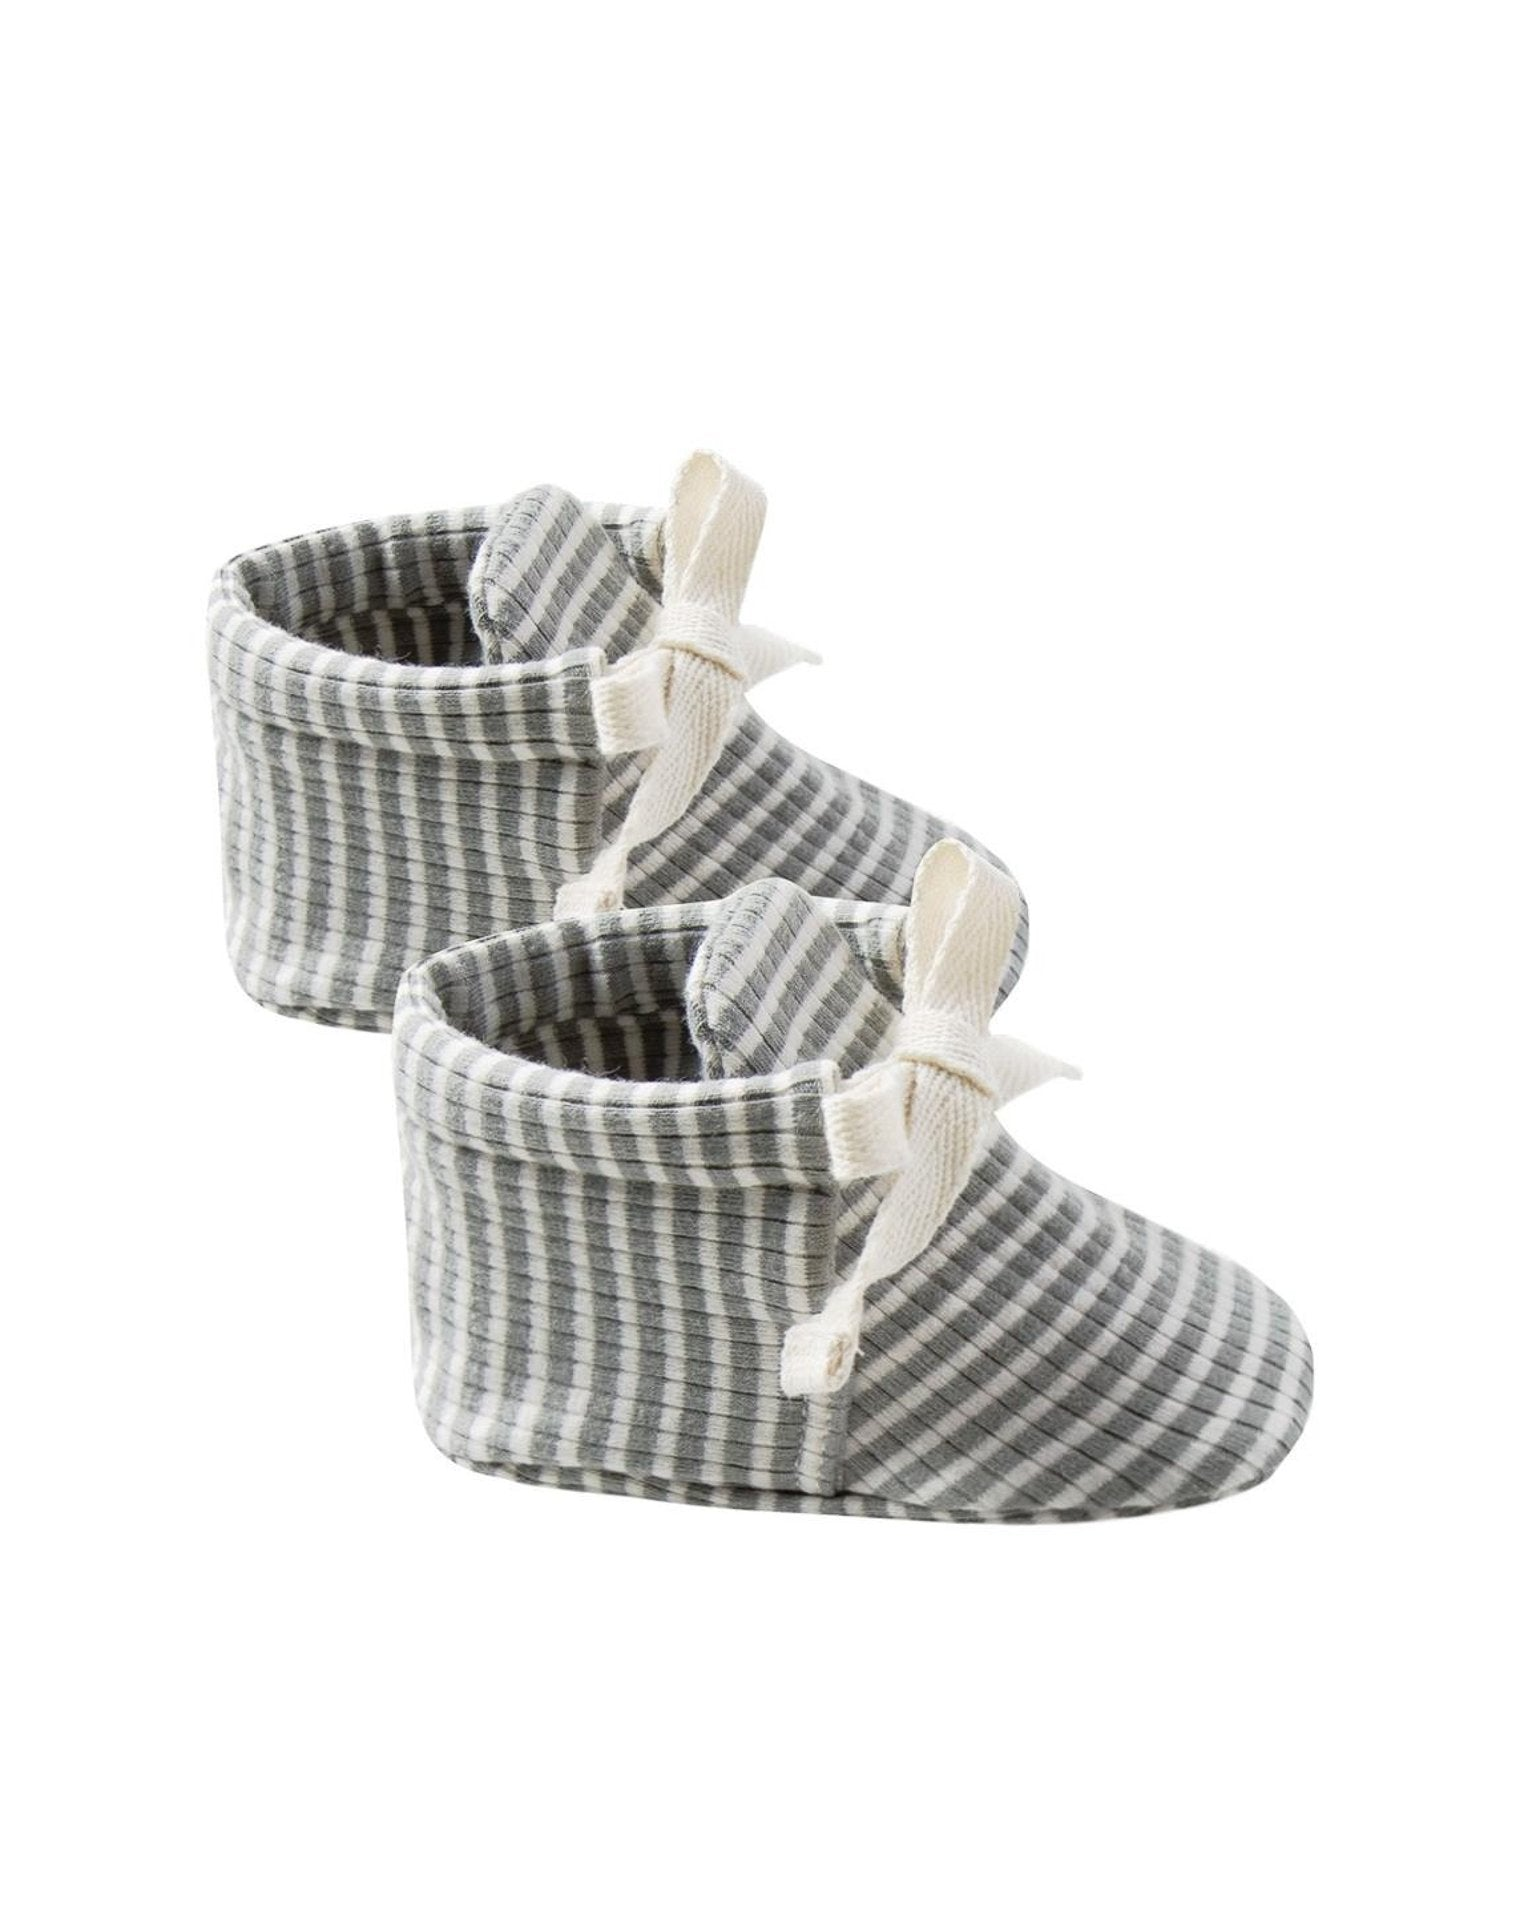 quincy mae ribbed baby booties in